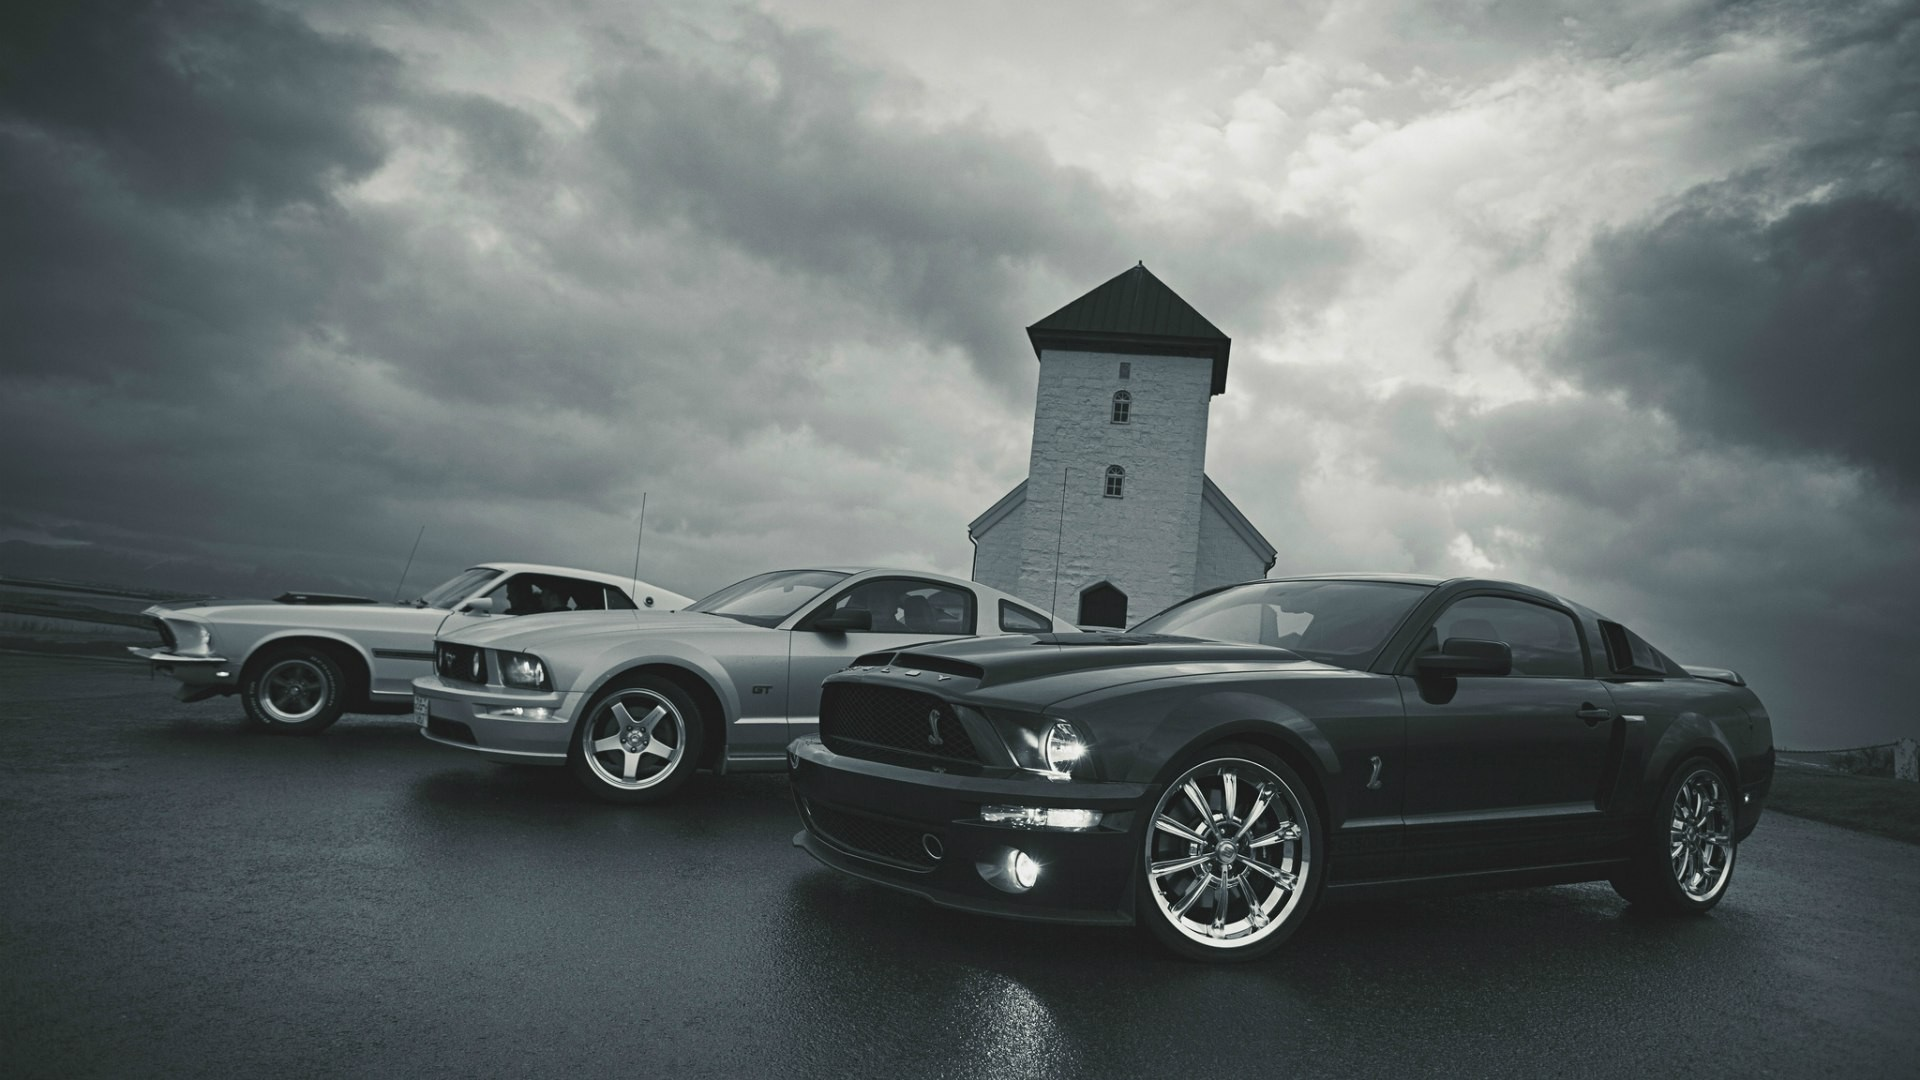 Ford Mustang Hd Wallpaper Background Image 1920x1080 Id 417332